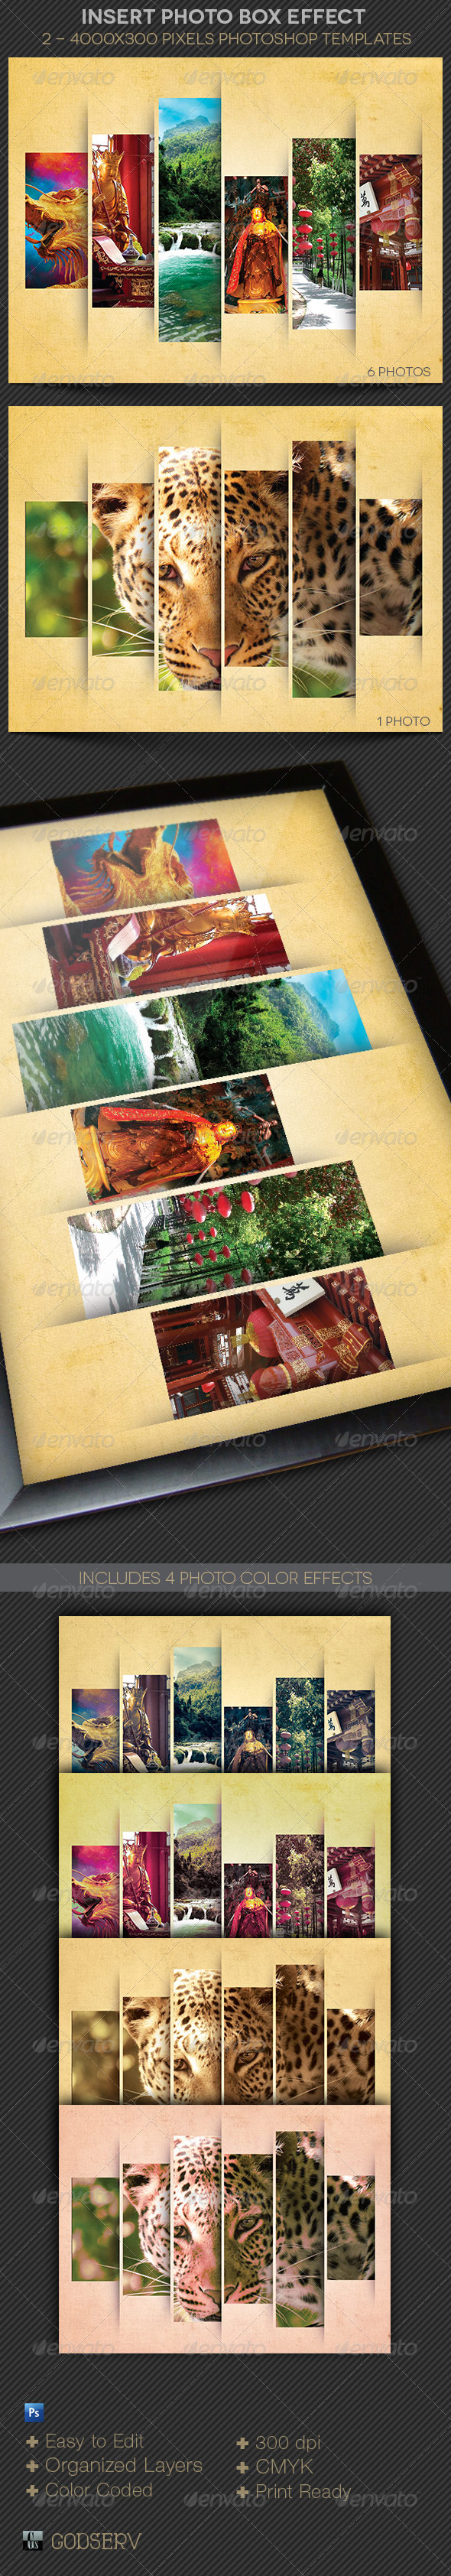 Insert Photo Box Effect Template - Artistic Photo Templates